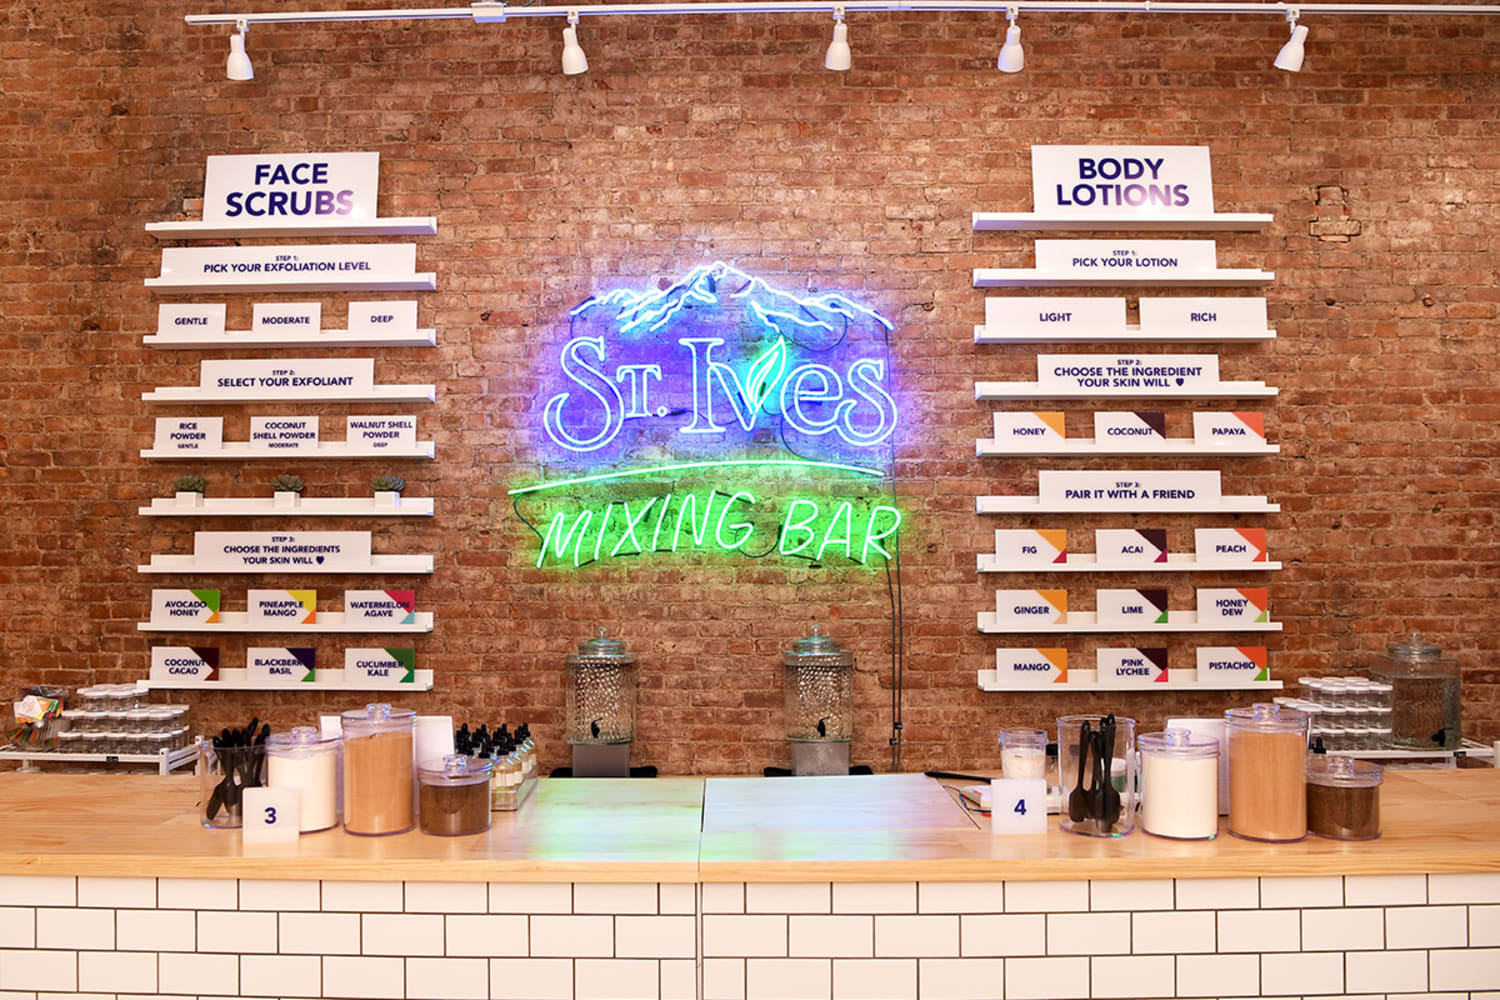 Customized Face Scrubs and Lotions at St Ives Mixing Bar summer pop up in Soho